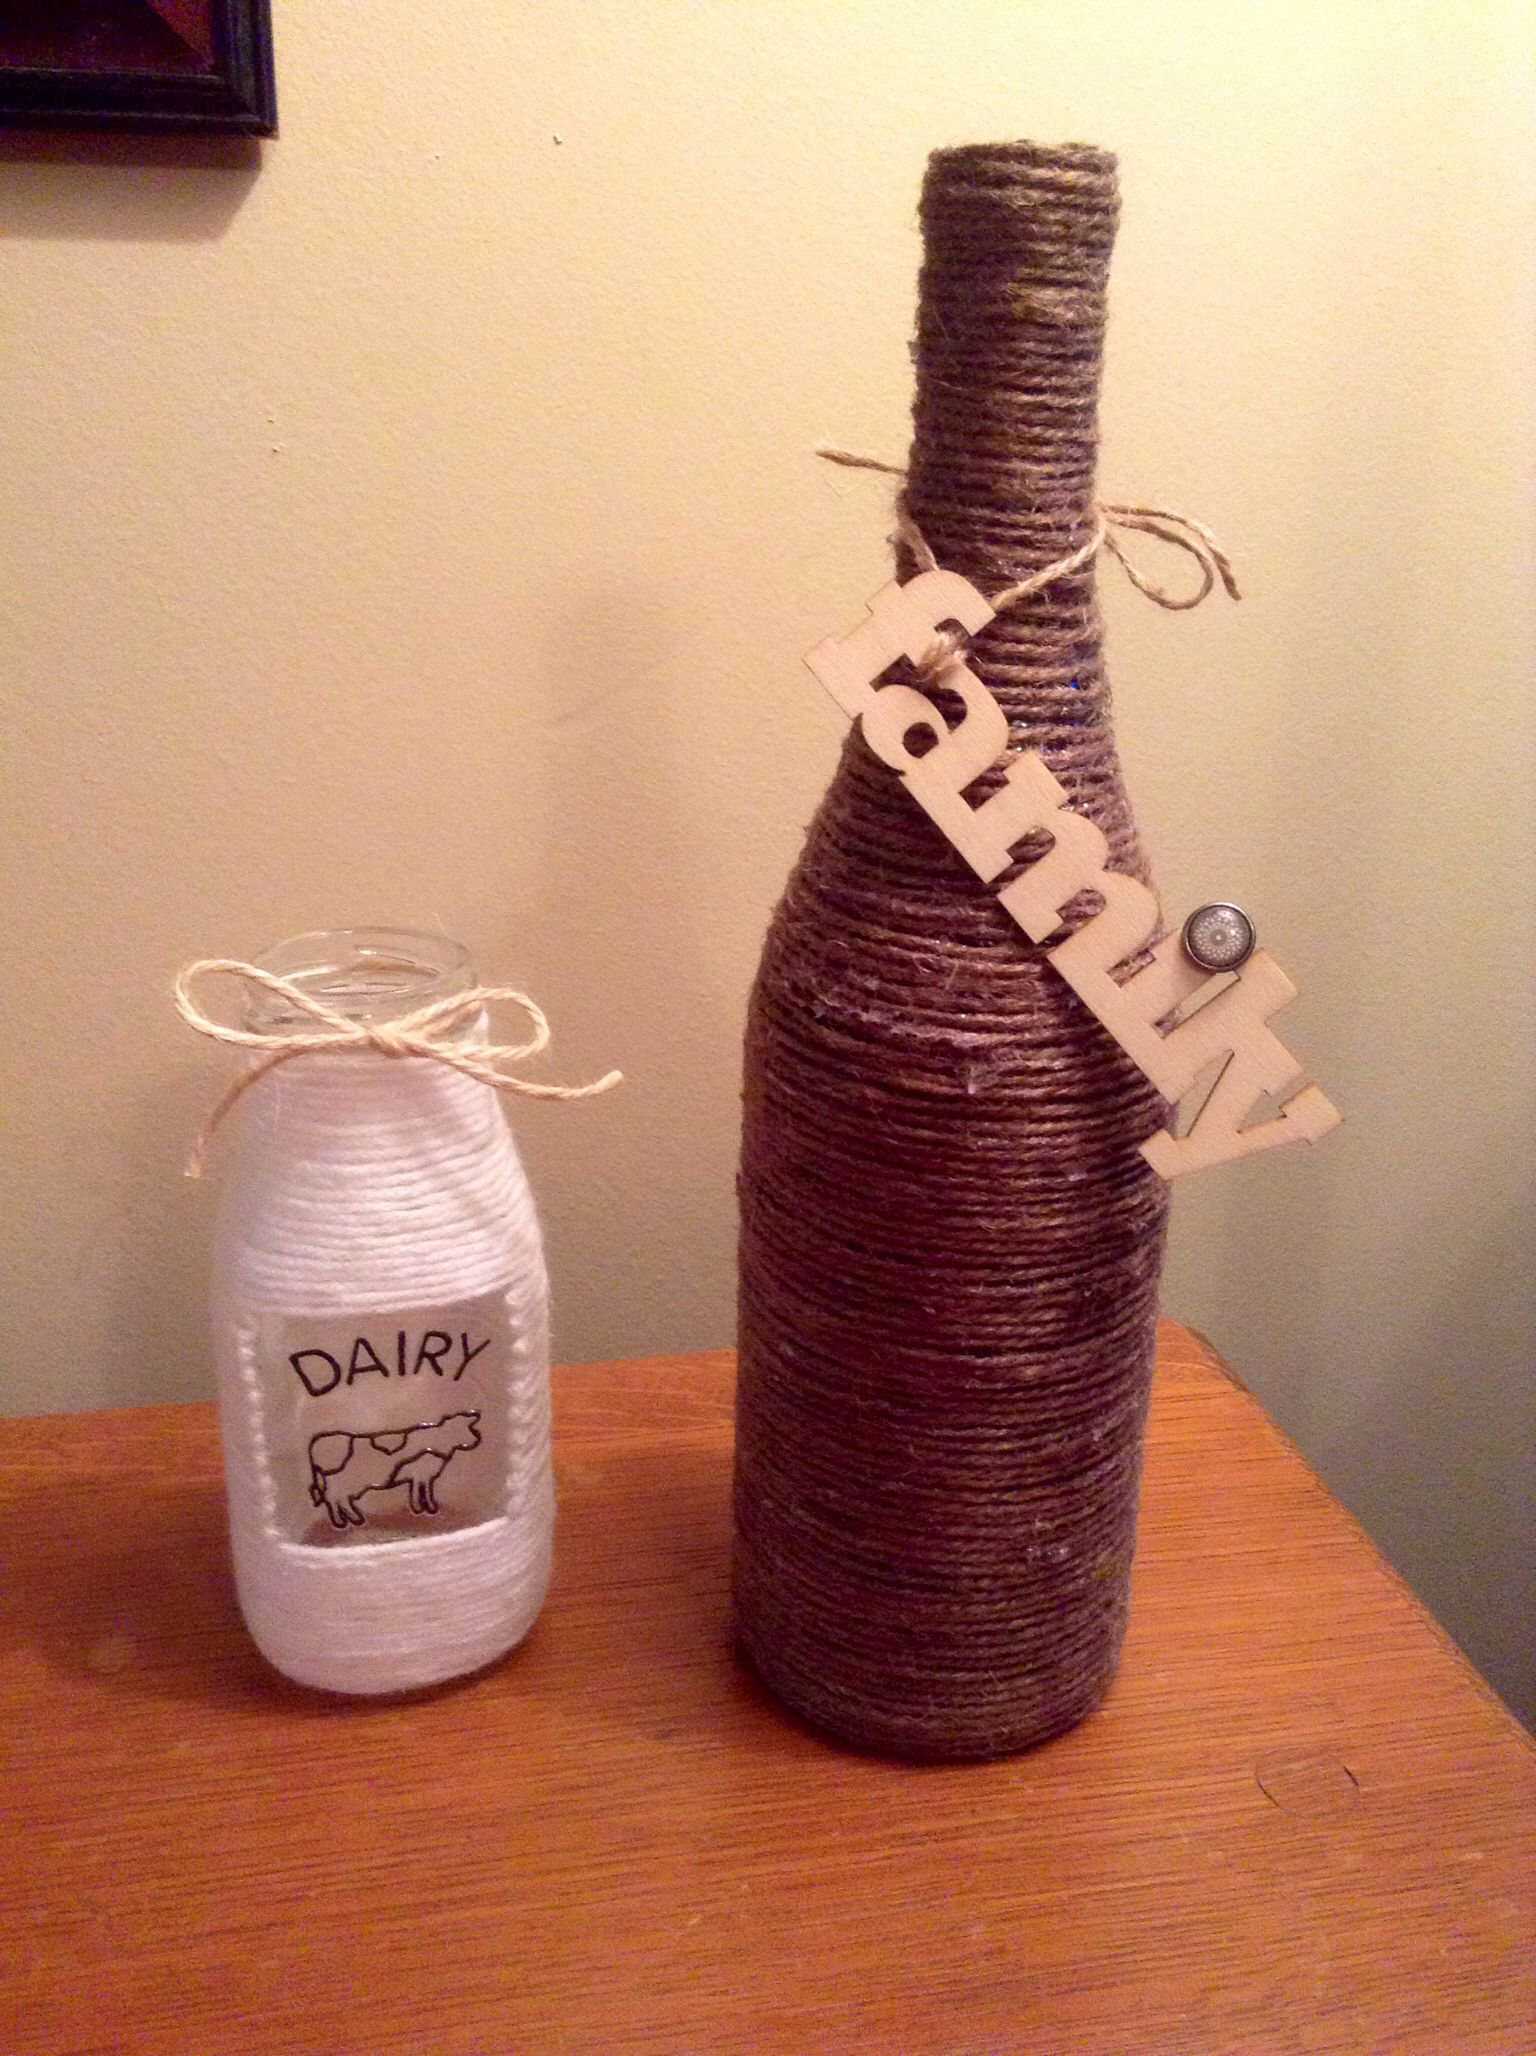 Decorate A Bottle Reuse Wine Bottles Or Any Glass Jar Or Bottle For A Gift Or To